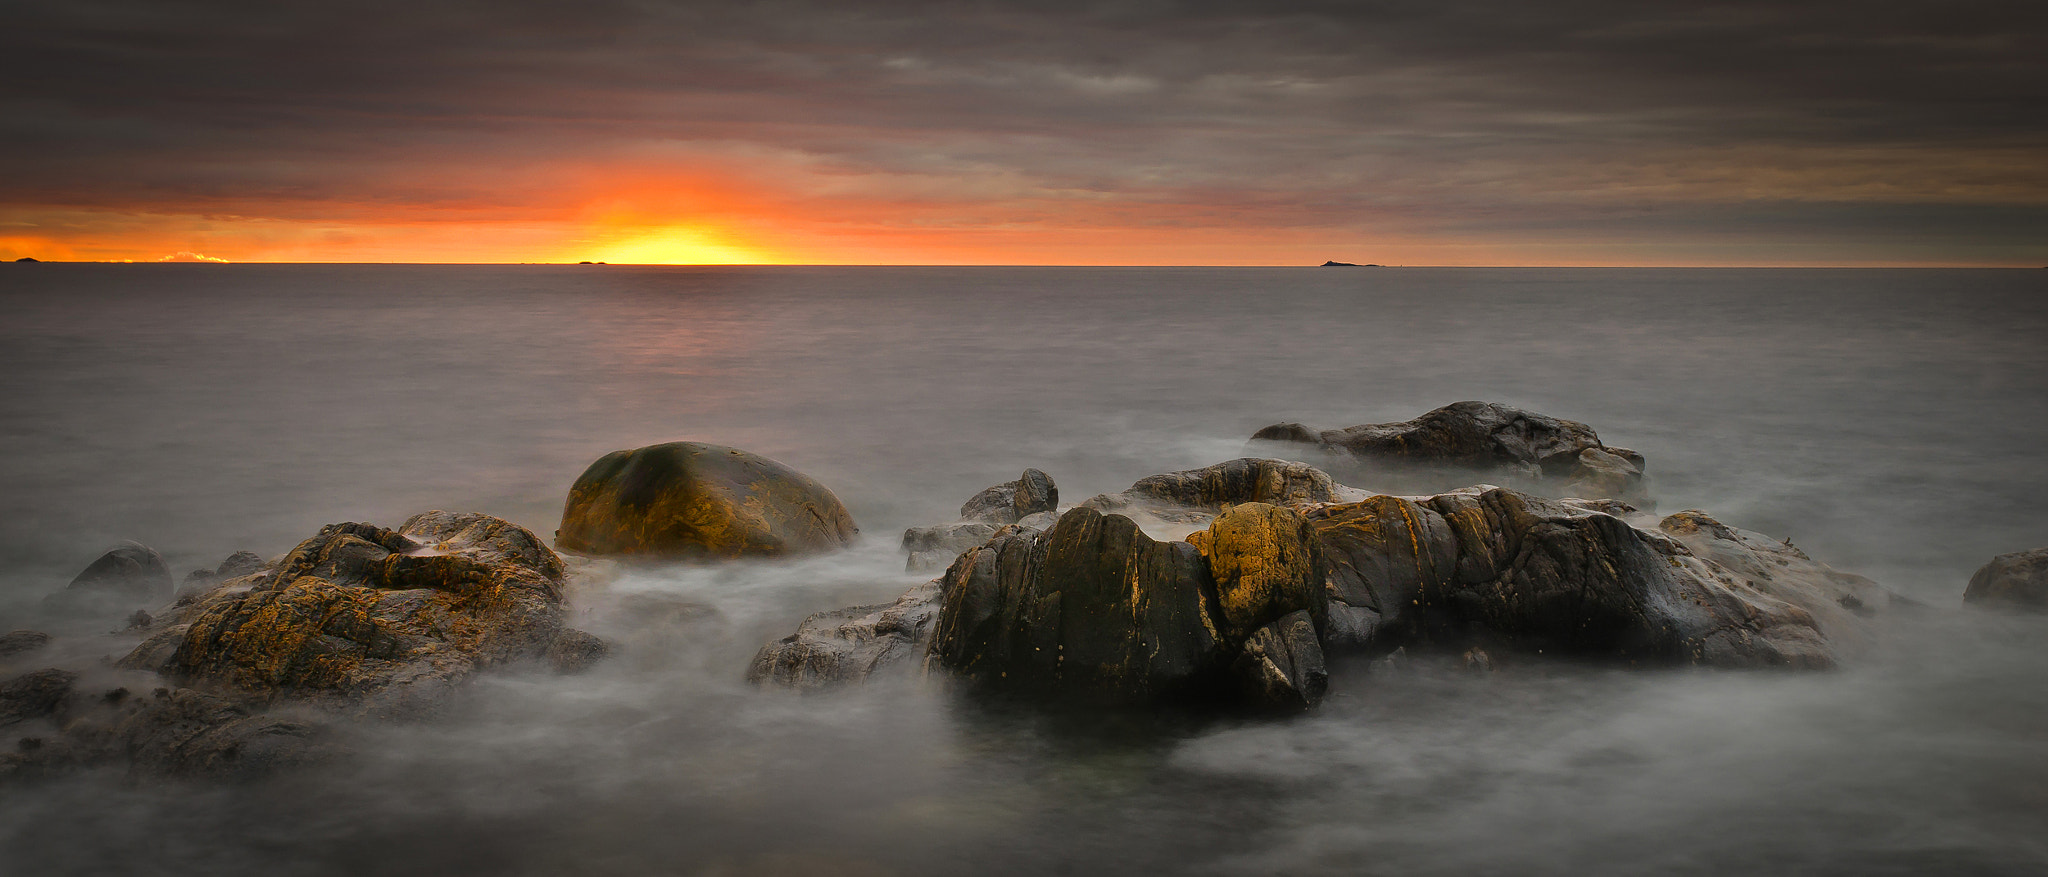 Photograph Sunset at the coast. by Geir Magne  Sætre on 500px